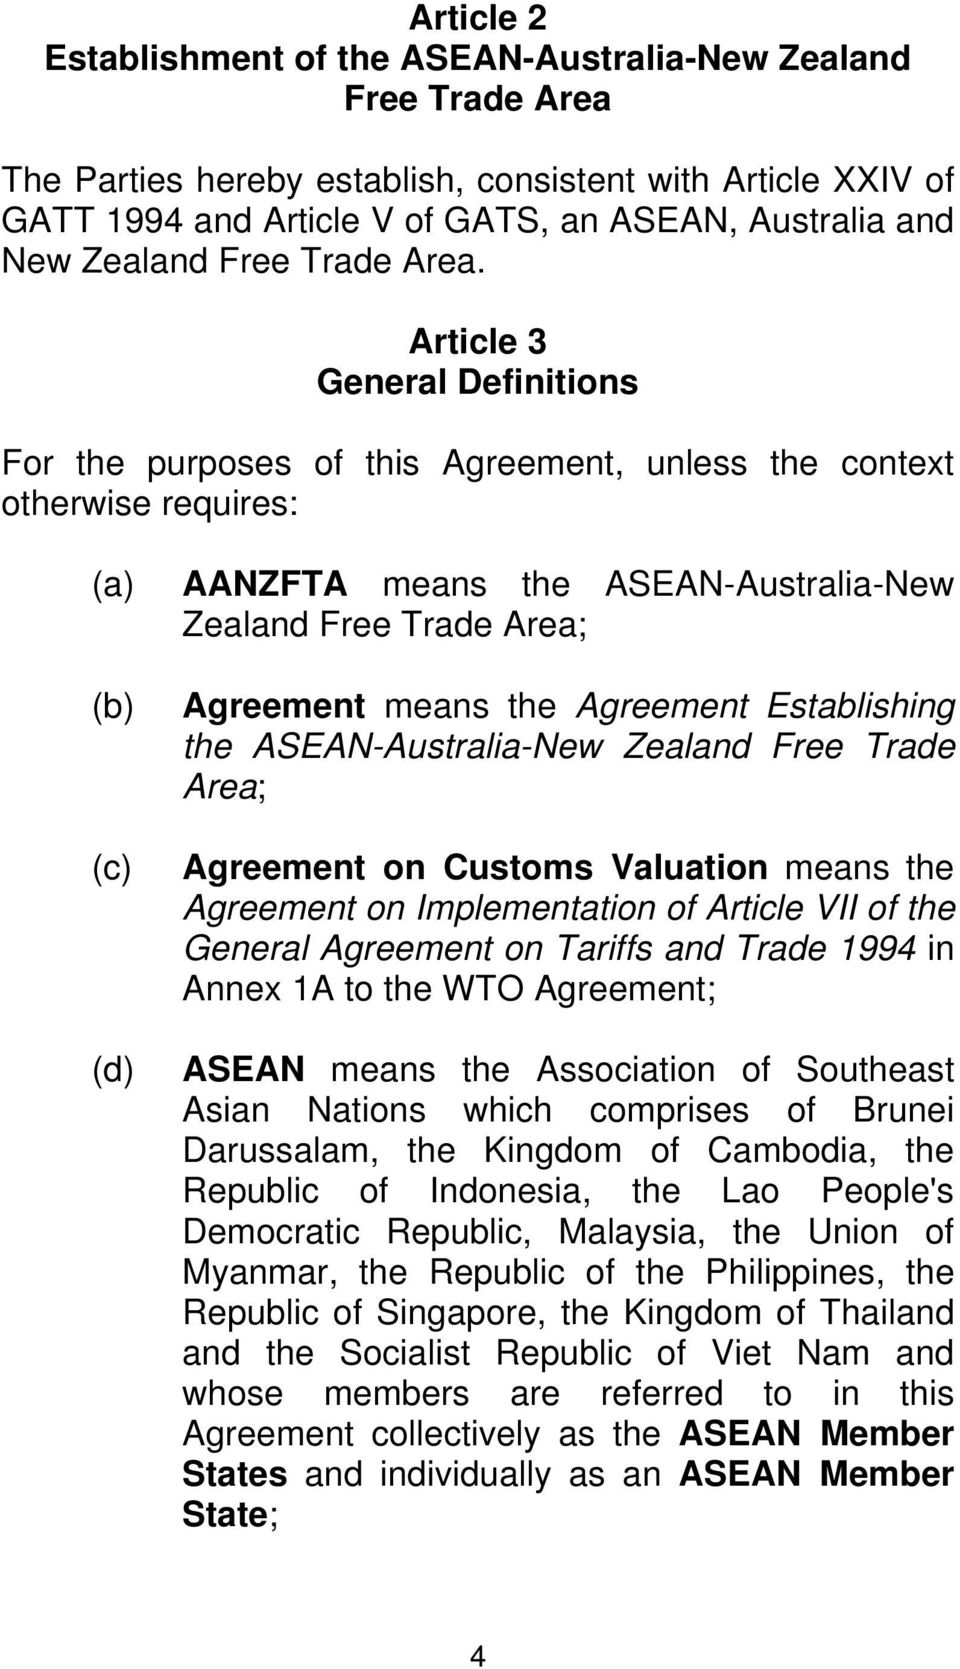 Article 3 General Definitions For the purposes of this Agreement, unless the context otherwise requires: (a) (b) (c) (d) AANZFTA means the ASEAN-Australia-New Zealand Free Trade Area; Agreement means